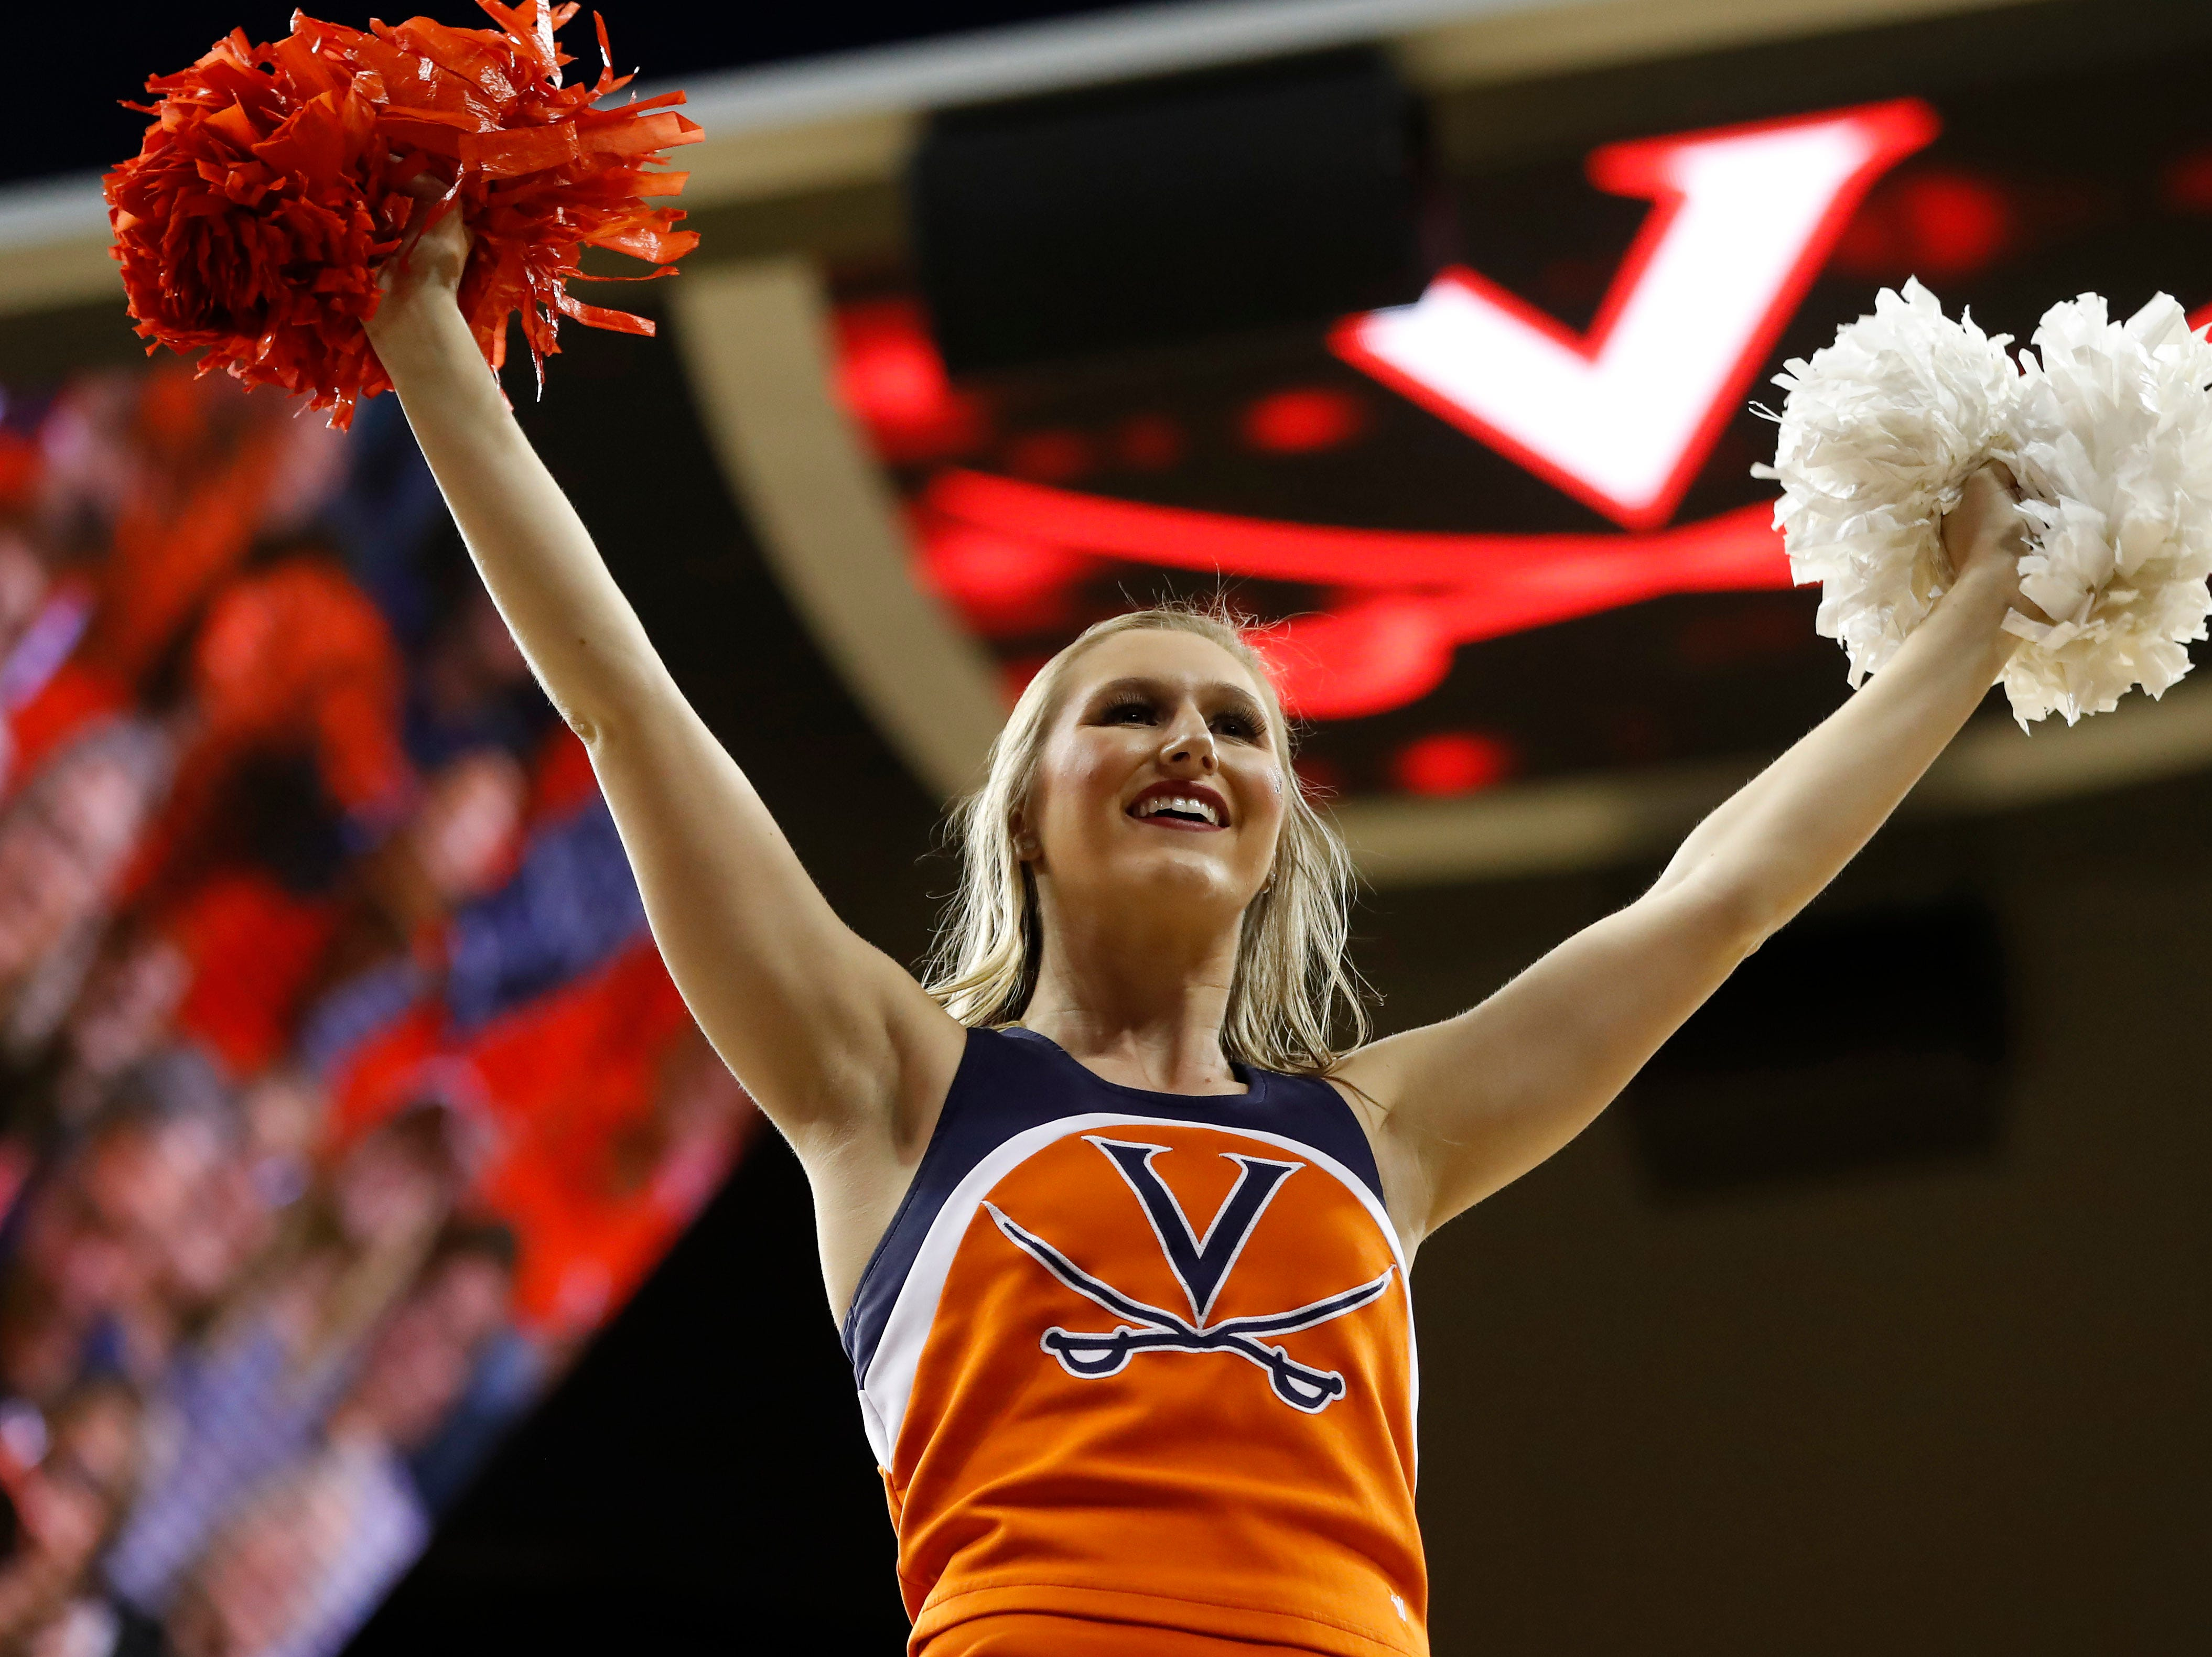 Jan 5, 2019; Charlottesville, VA, USA; A Virginia Cavaliers cheerleader cheers on the court during a timeout against the Florida State Seminoles in the second half at John Paul Jones Arena. Mandatory Credit: Geoff Burke-USA TODAY Sports